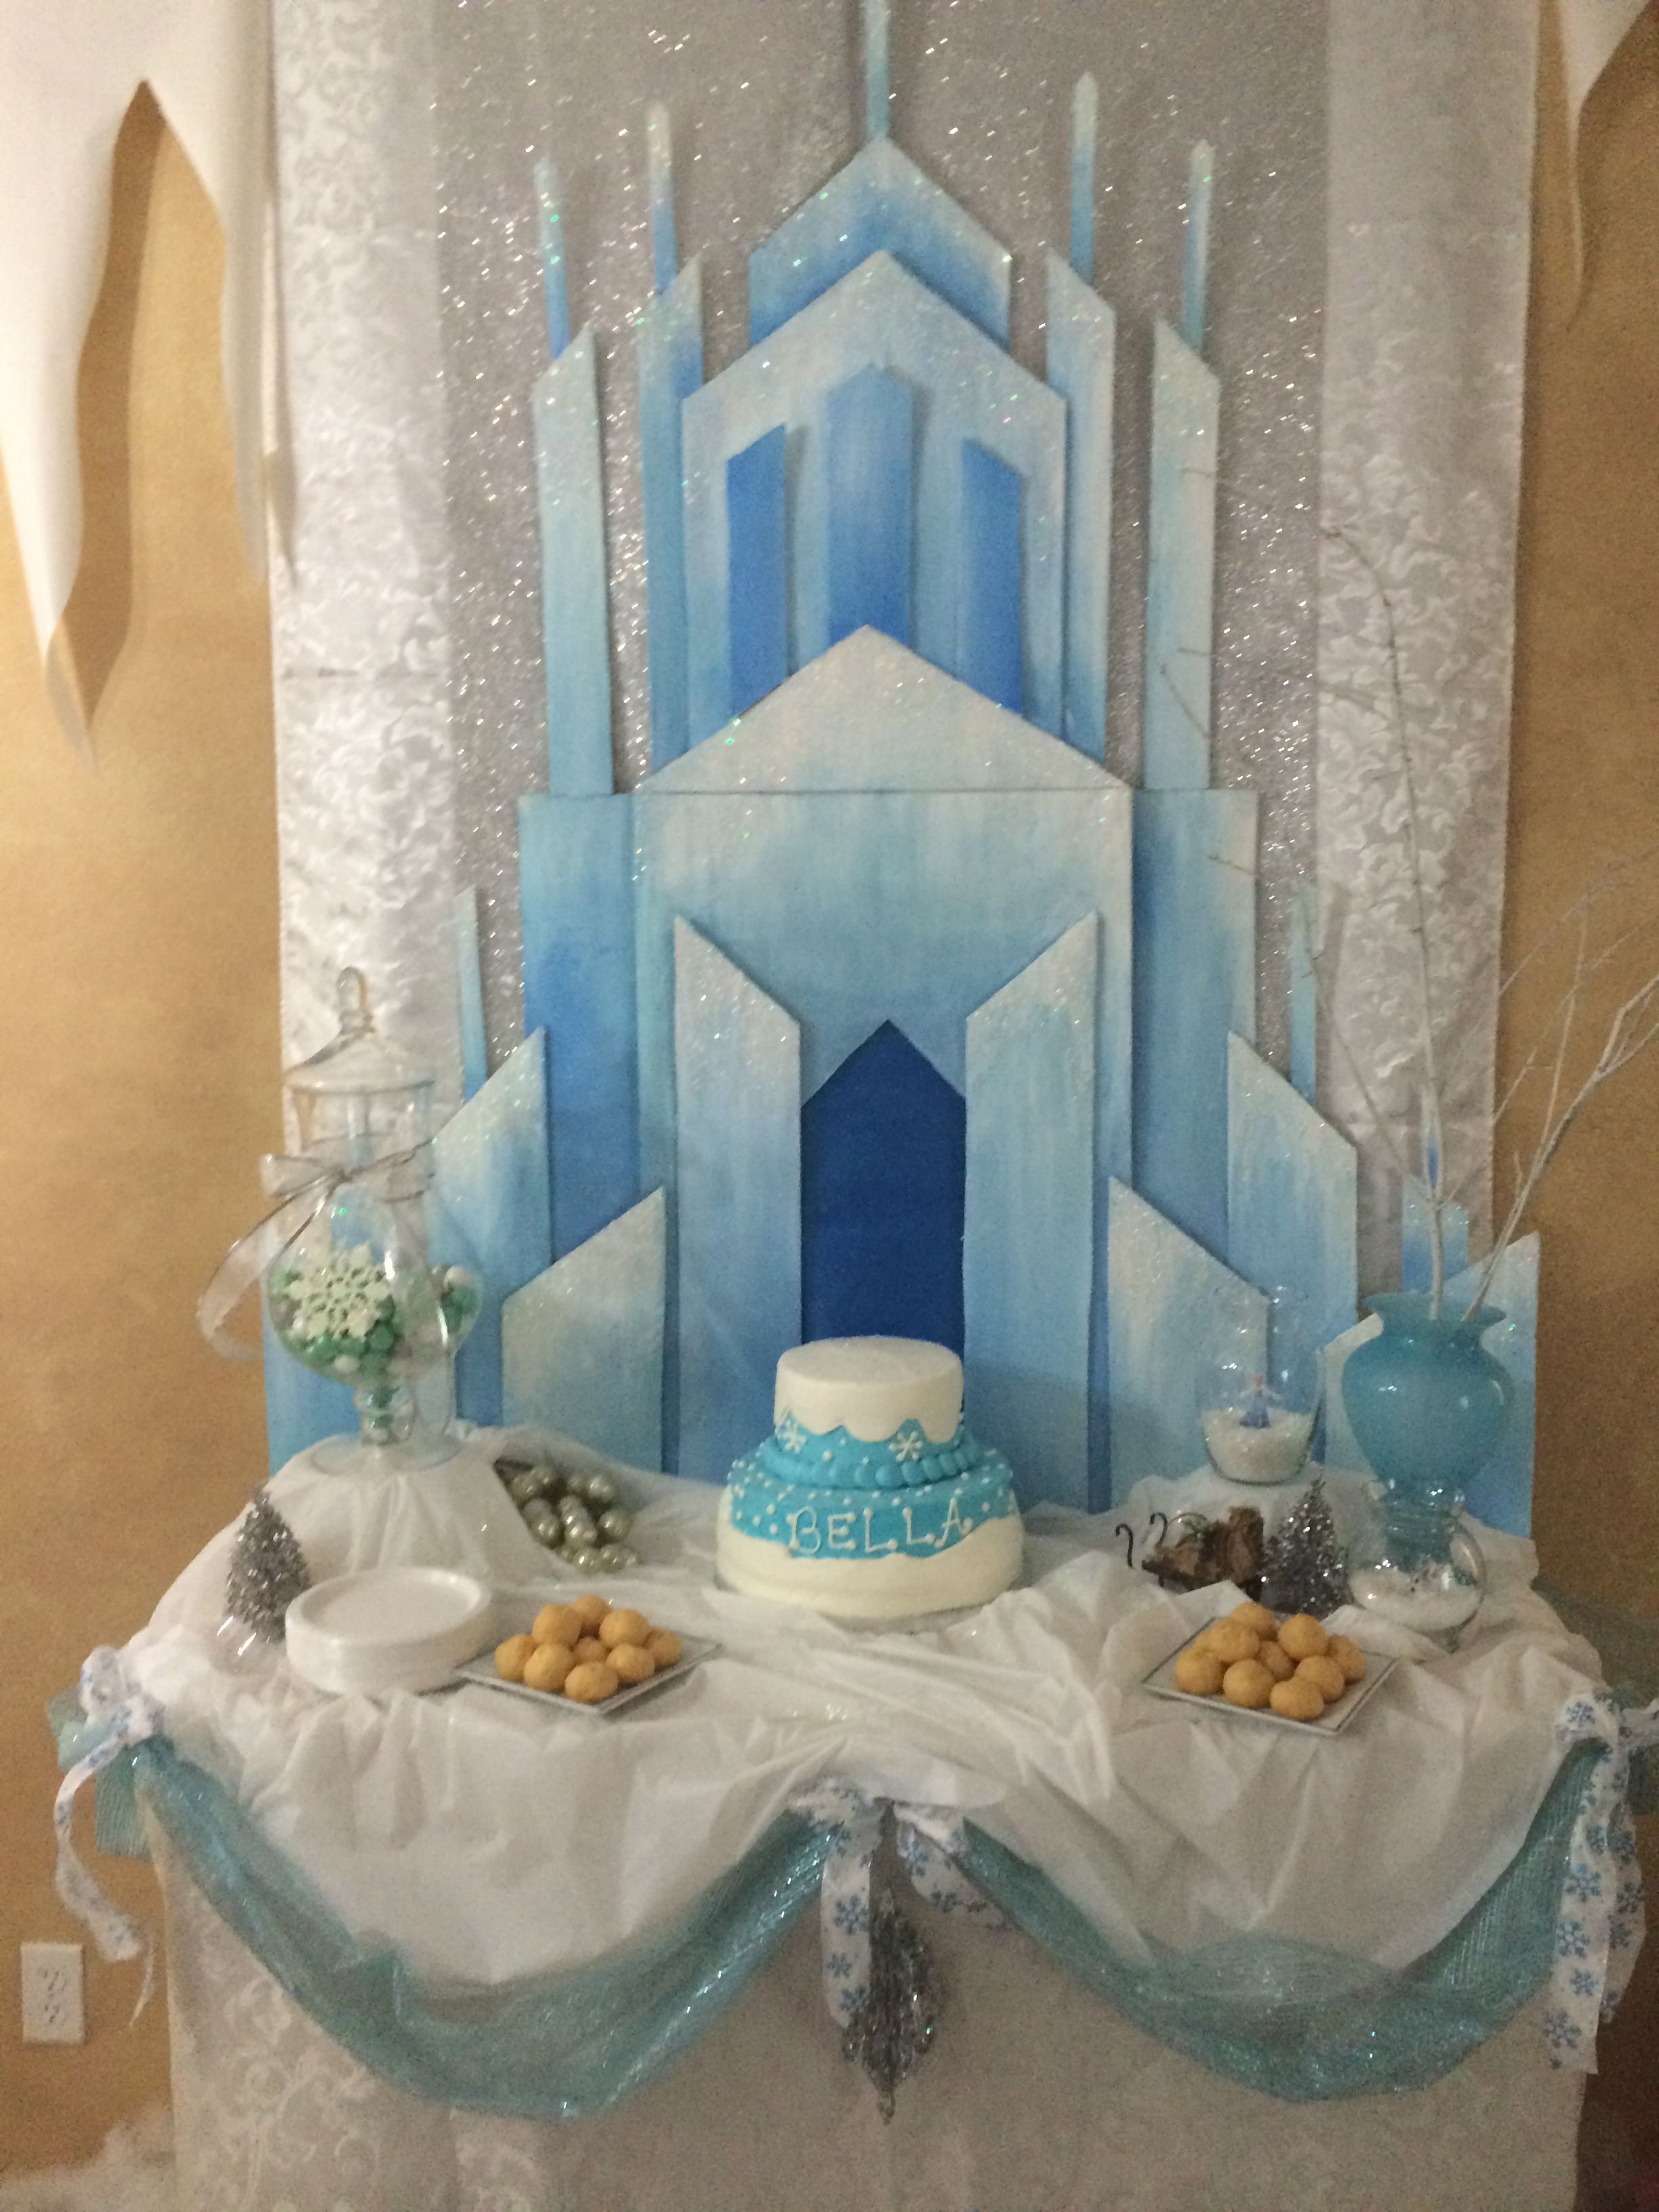 Party Deko Elsa This Backdrop Is Amazing For A Frozen Birthday Party Elsa S